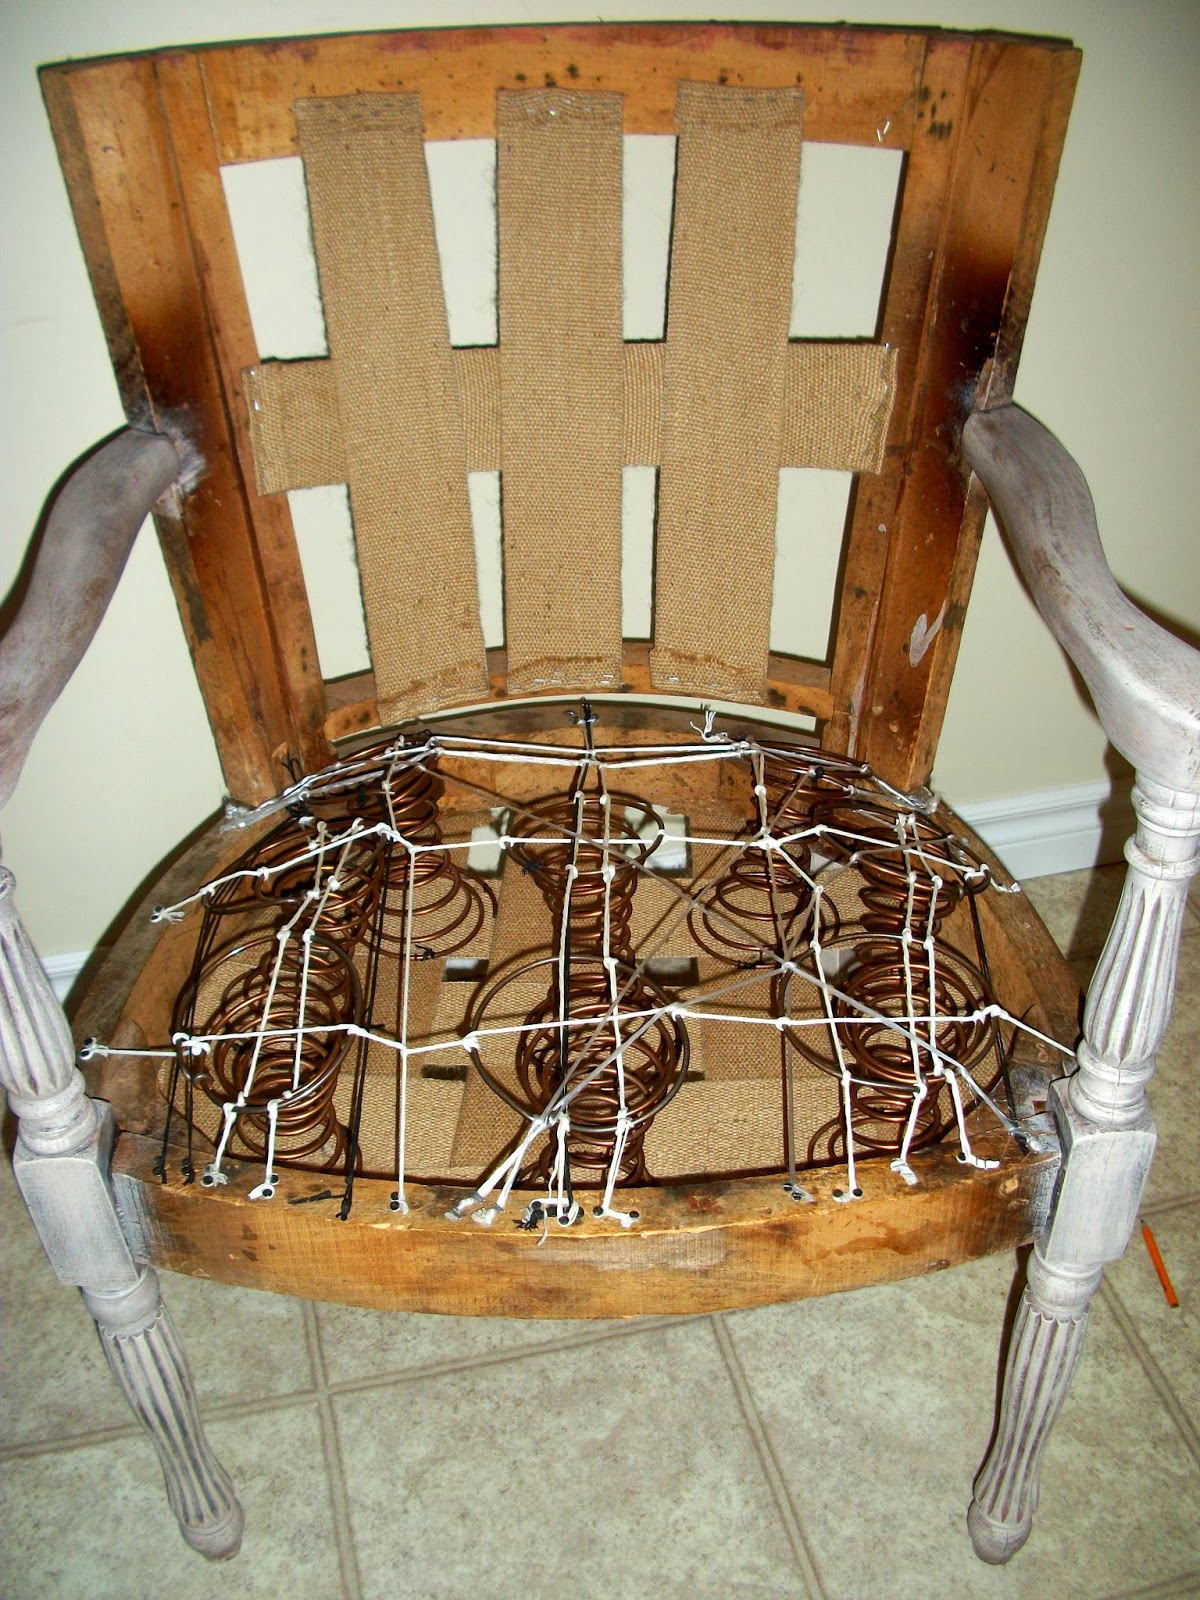 Spring Chair Fay Grayson Home First Time Coil Spring Tying Padding It Out